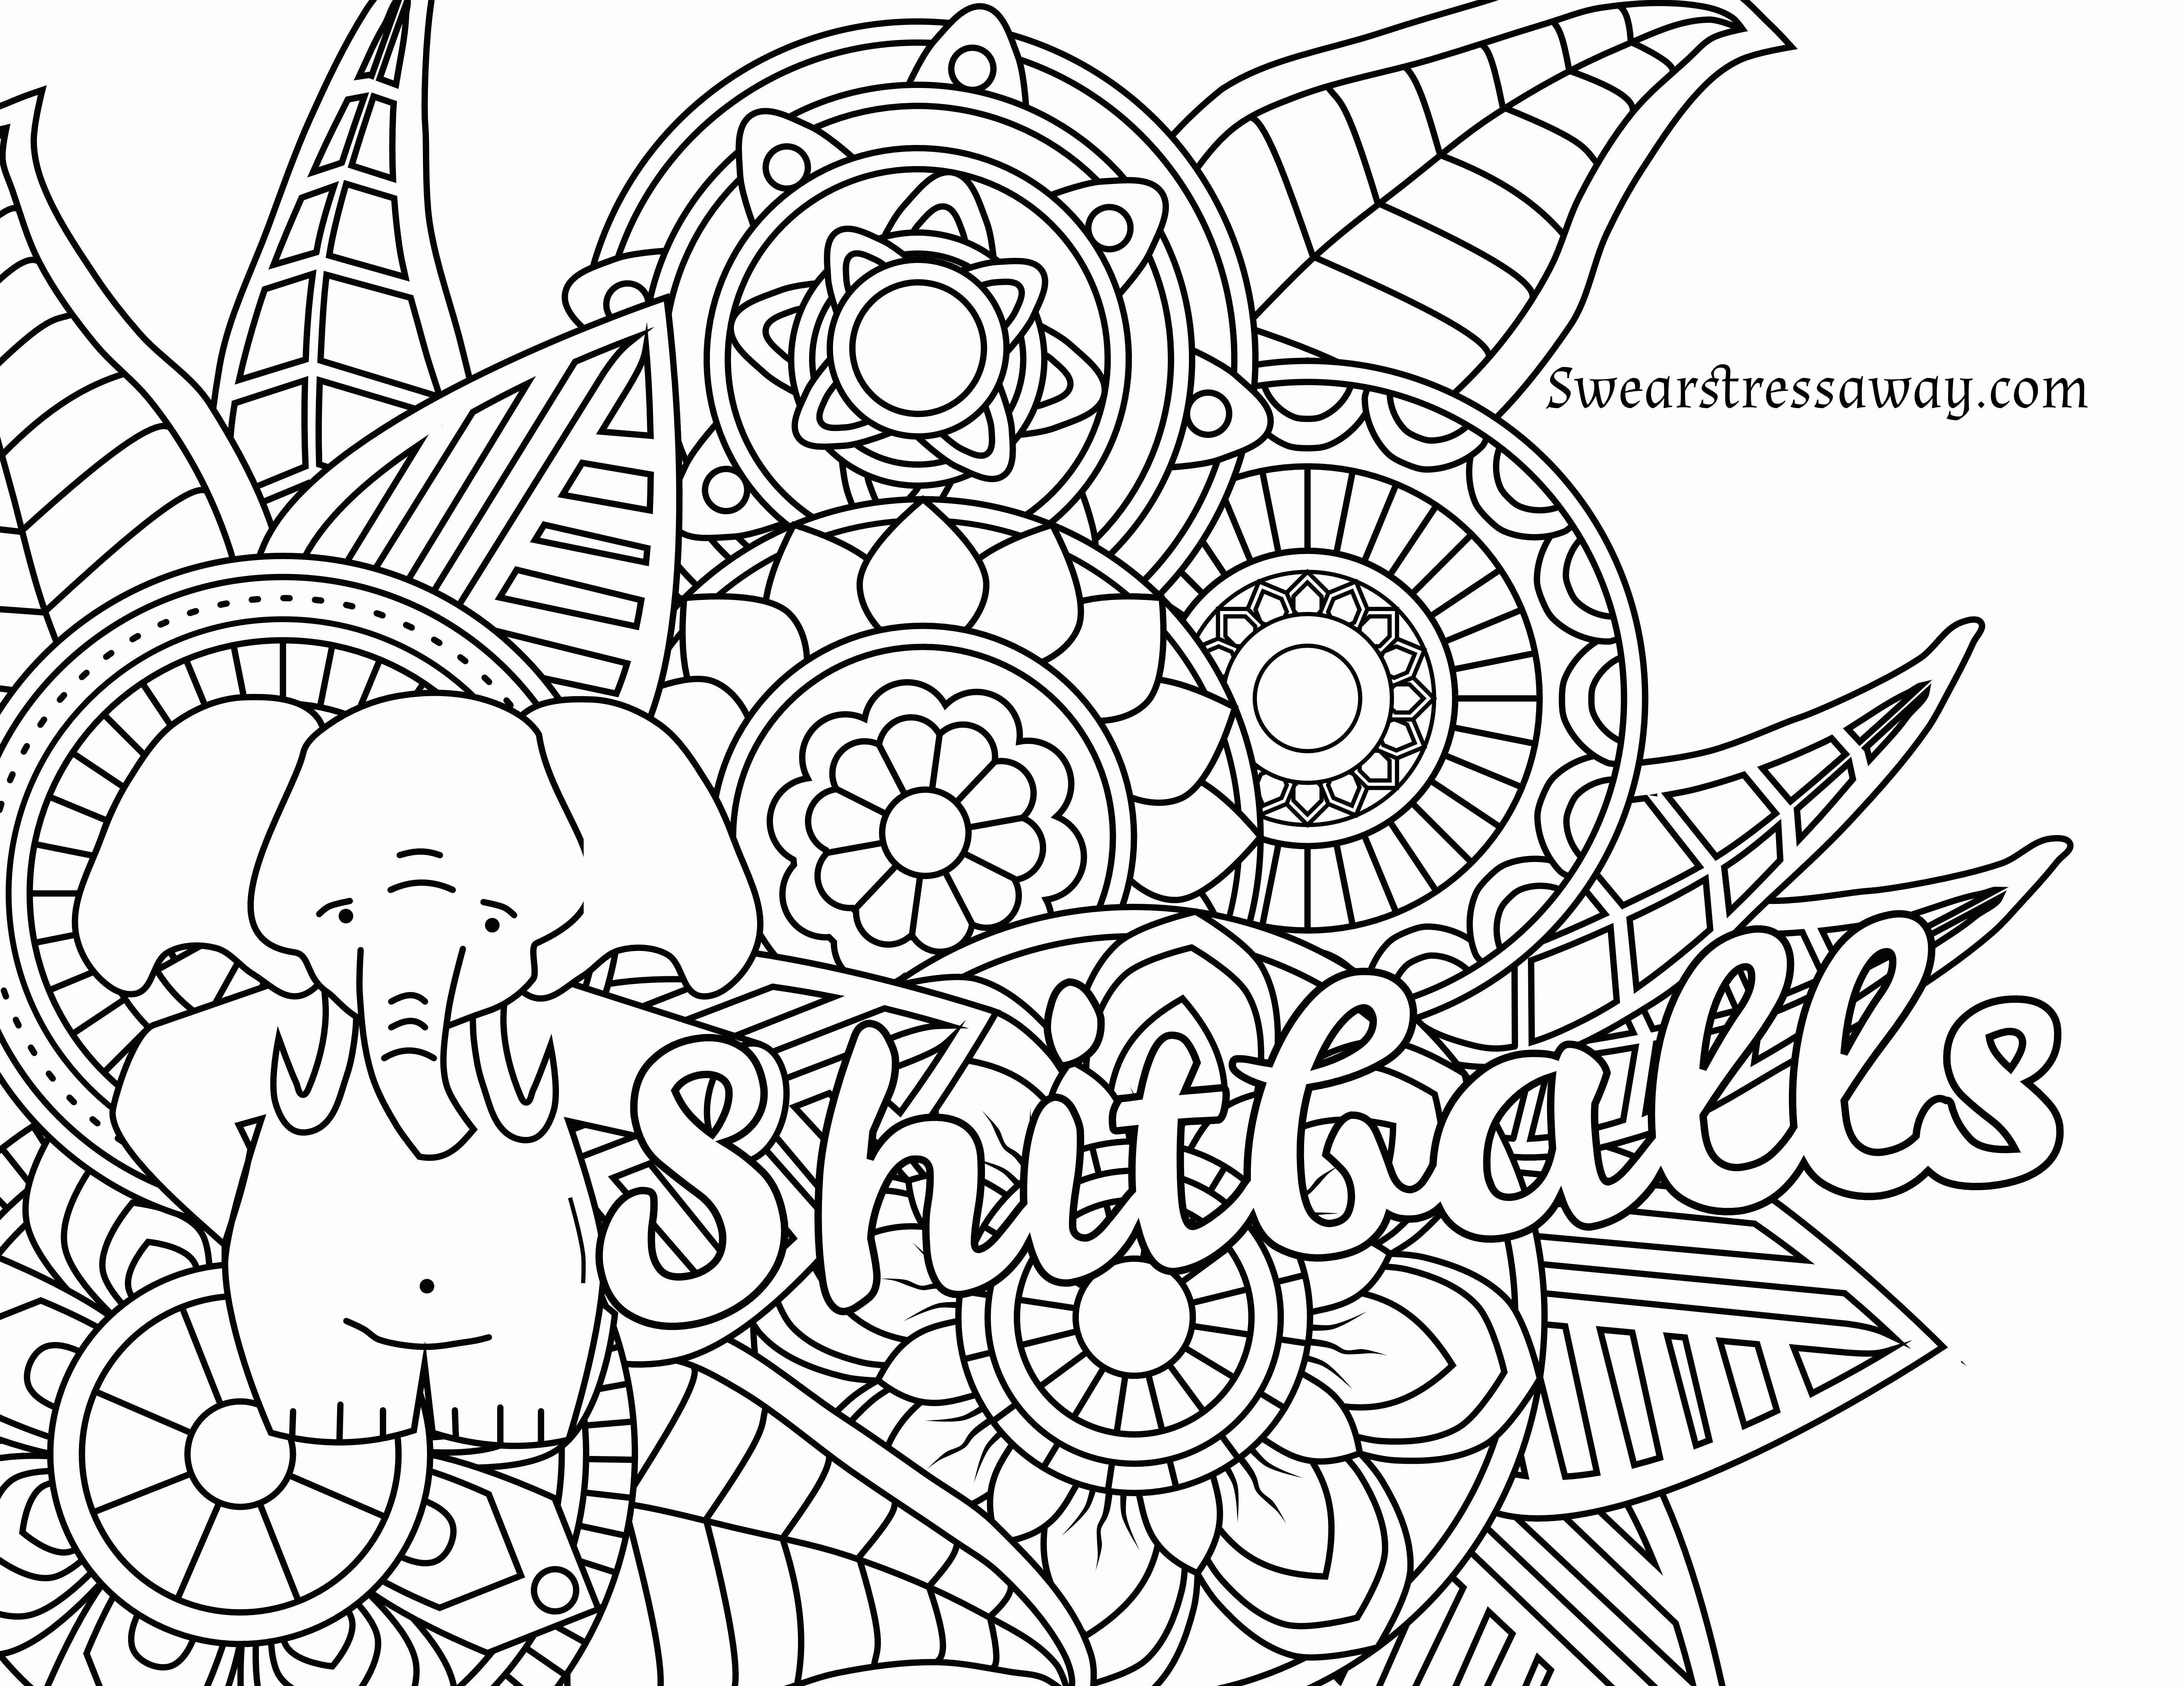 Most Current Snap Shots Coloring Books Fall Style This Can Be A Final Guide To Coloring Regarding O Fall Coloring Pages Words Coloring Book Cool Coloring Pages